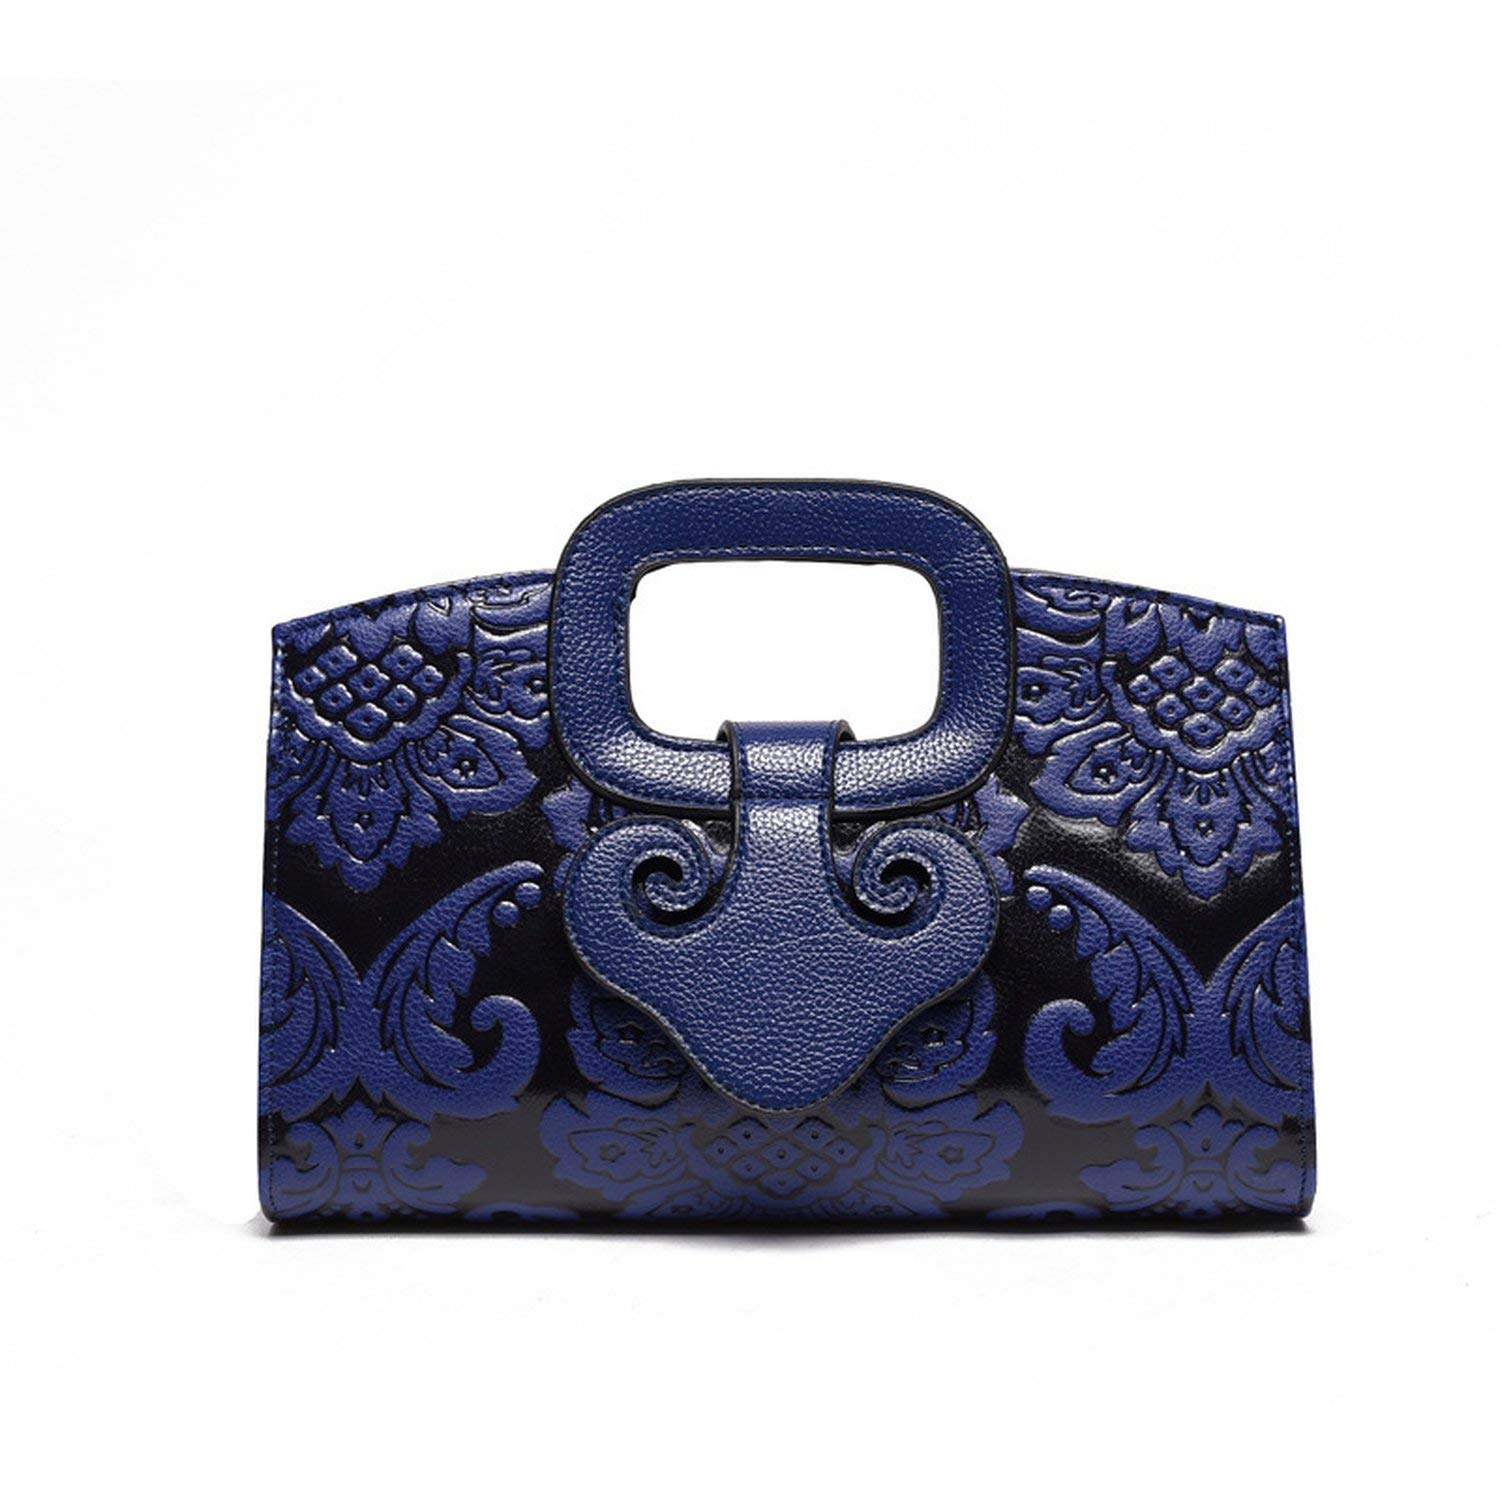 leather Vintage bag Embossing bags Designer Floral print handbag luxury  handbag bolsa e992a4527a8b1